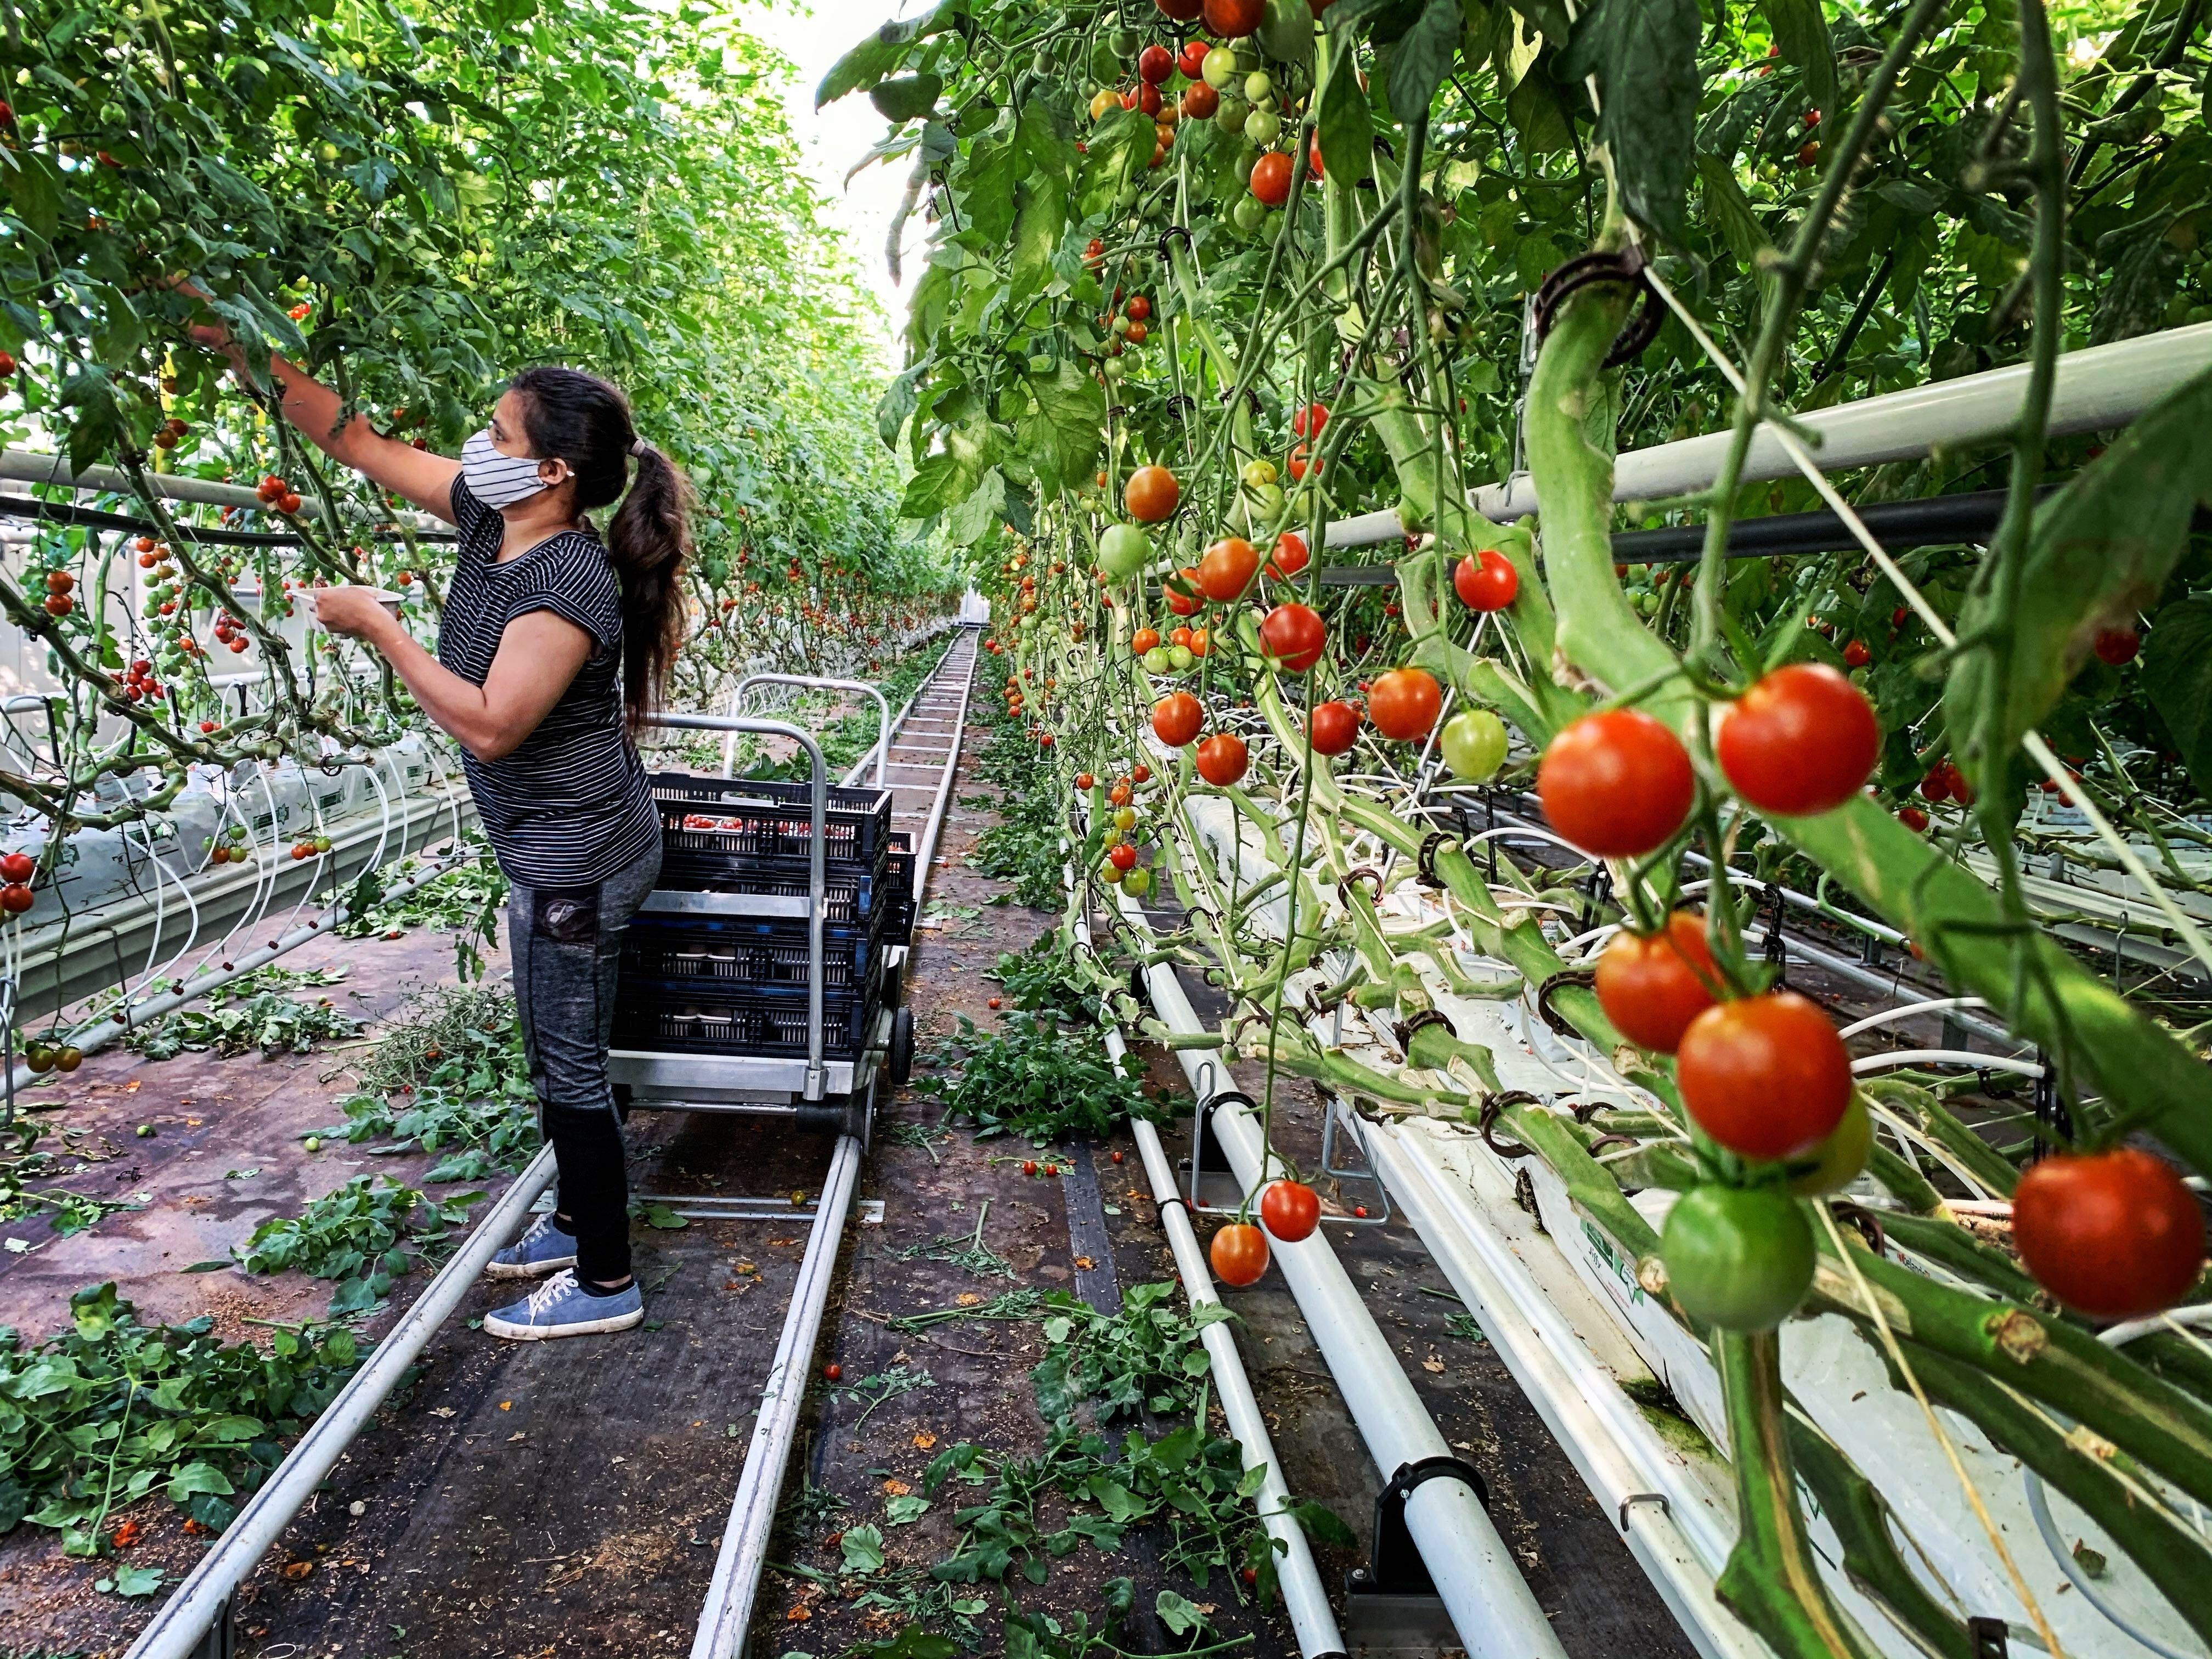 Montreal S Lufa Farms Expands Veggie Offerings With Massive Rooftop Greenhouse Montreal Globalnews Ca